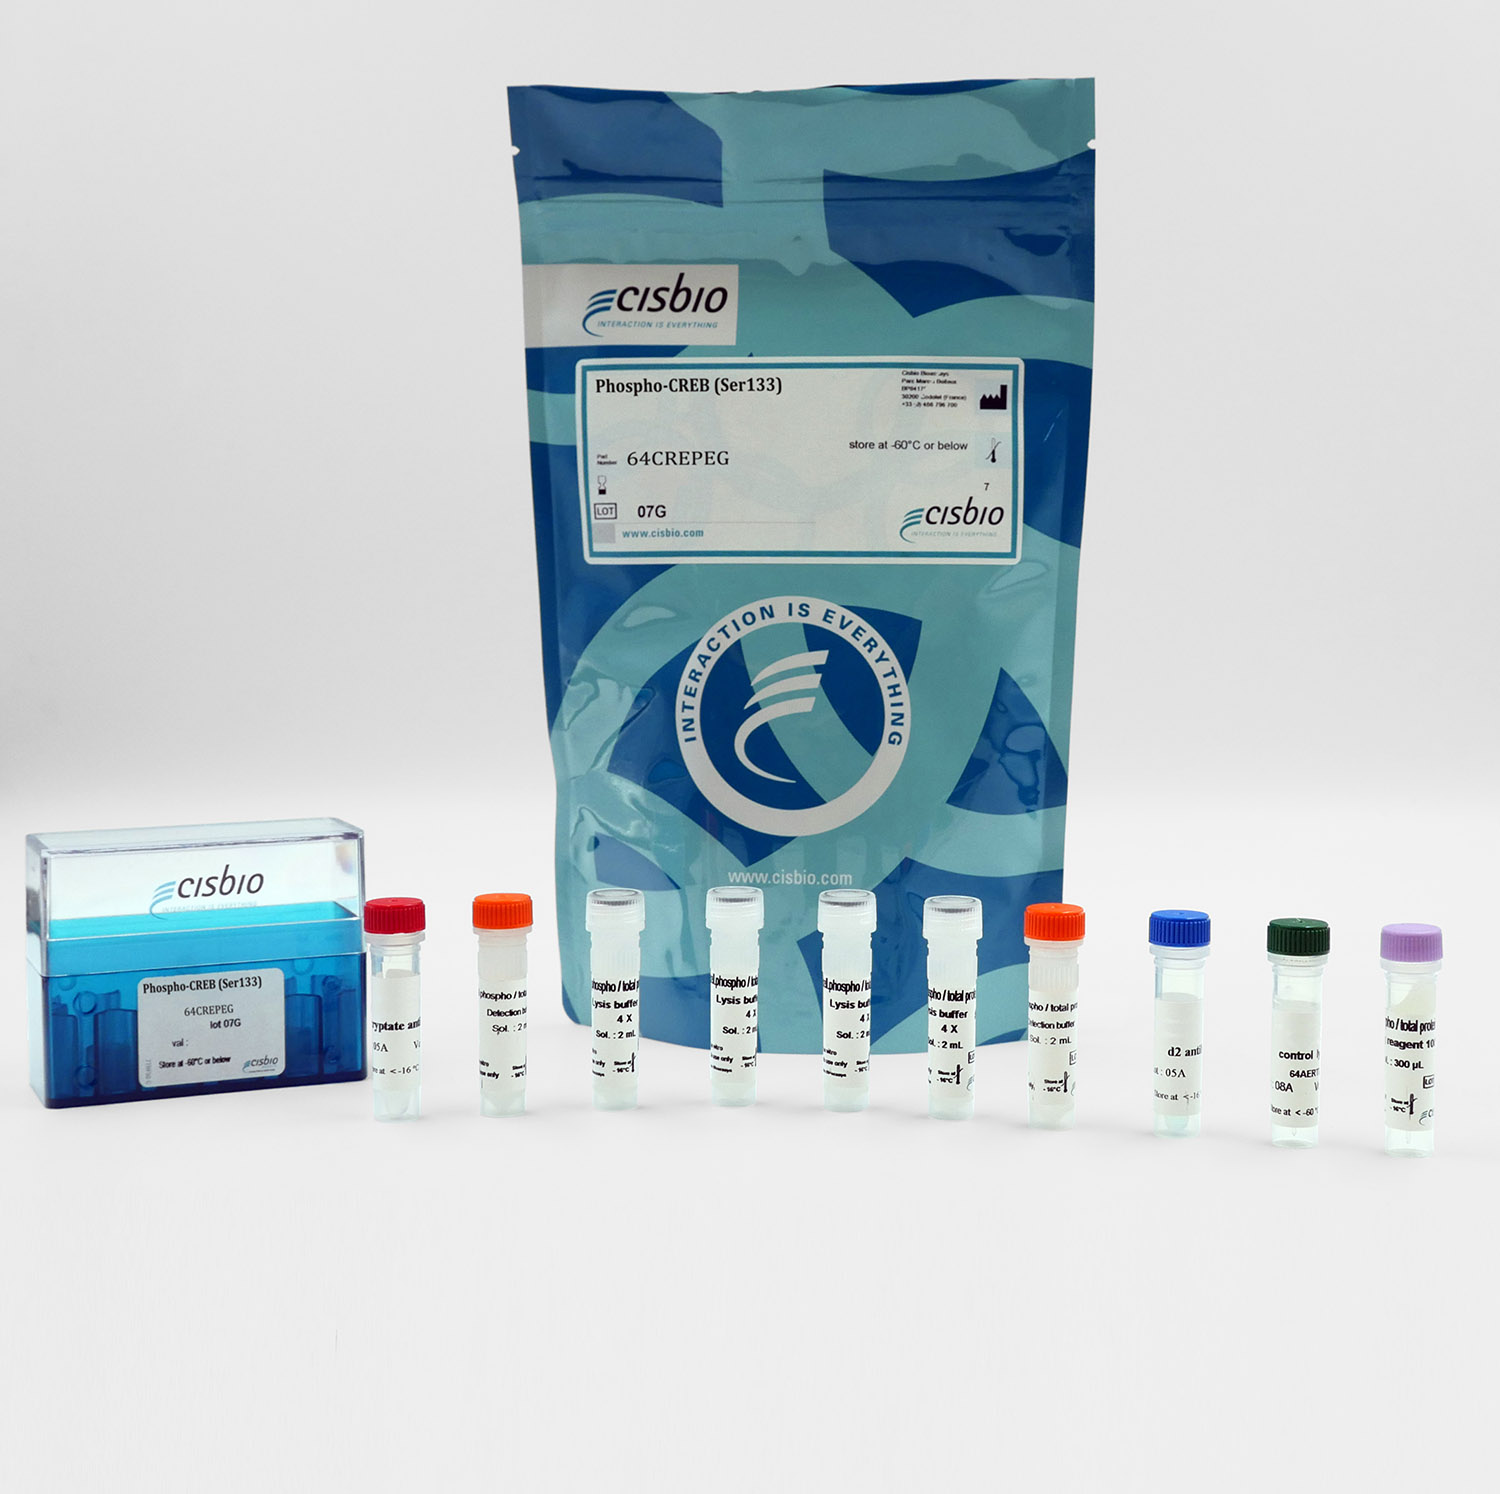 Phospho-CREB (Ser133) cellular kit